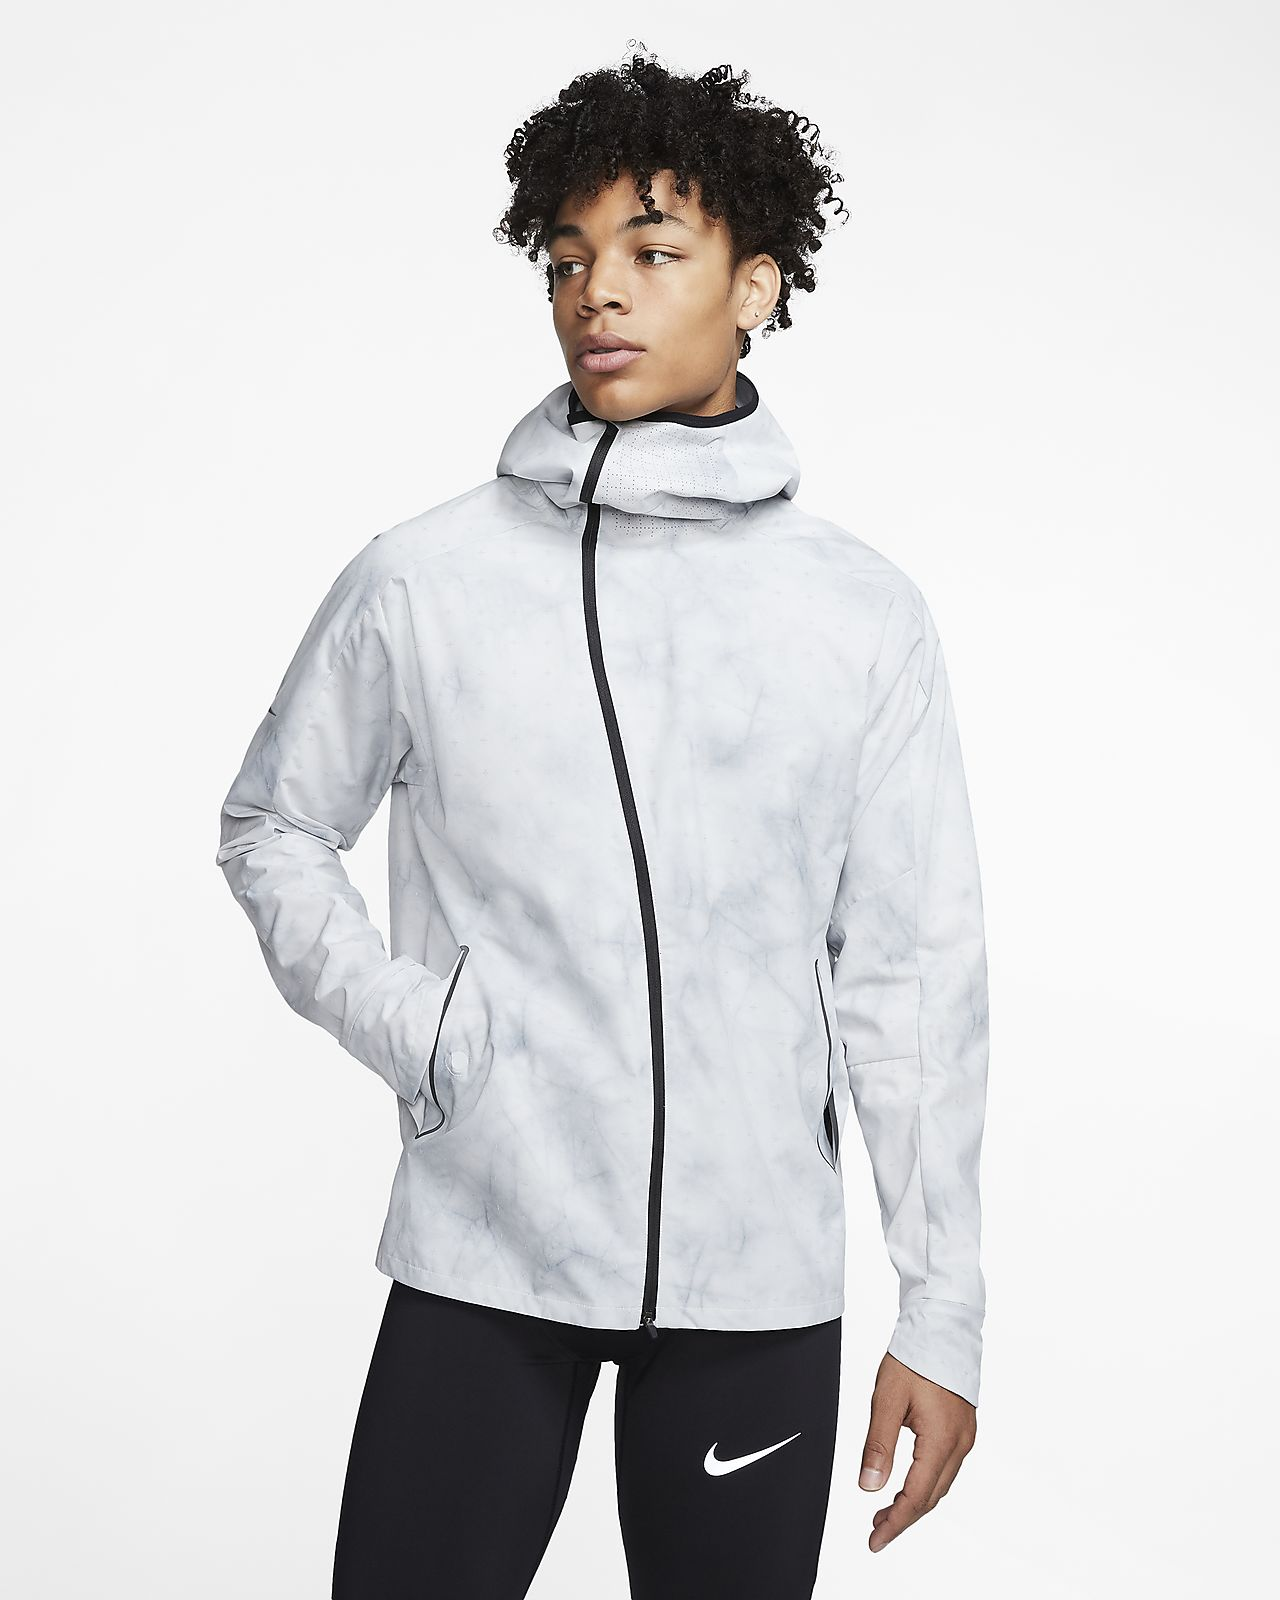 Nike Tech Fleece Aeroloft Tech Fleece